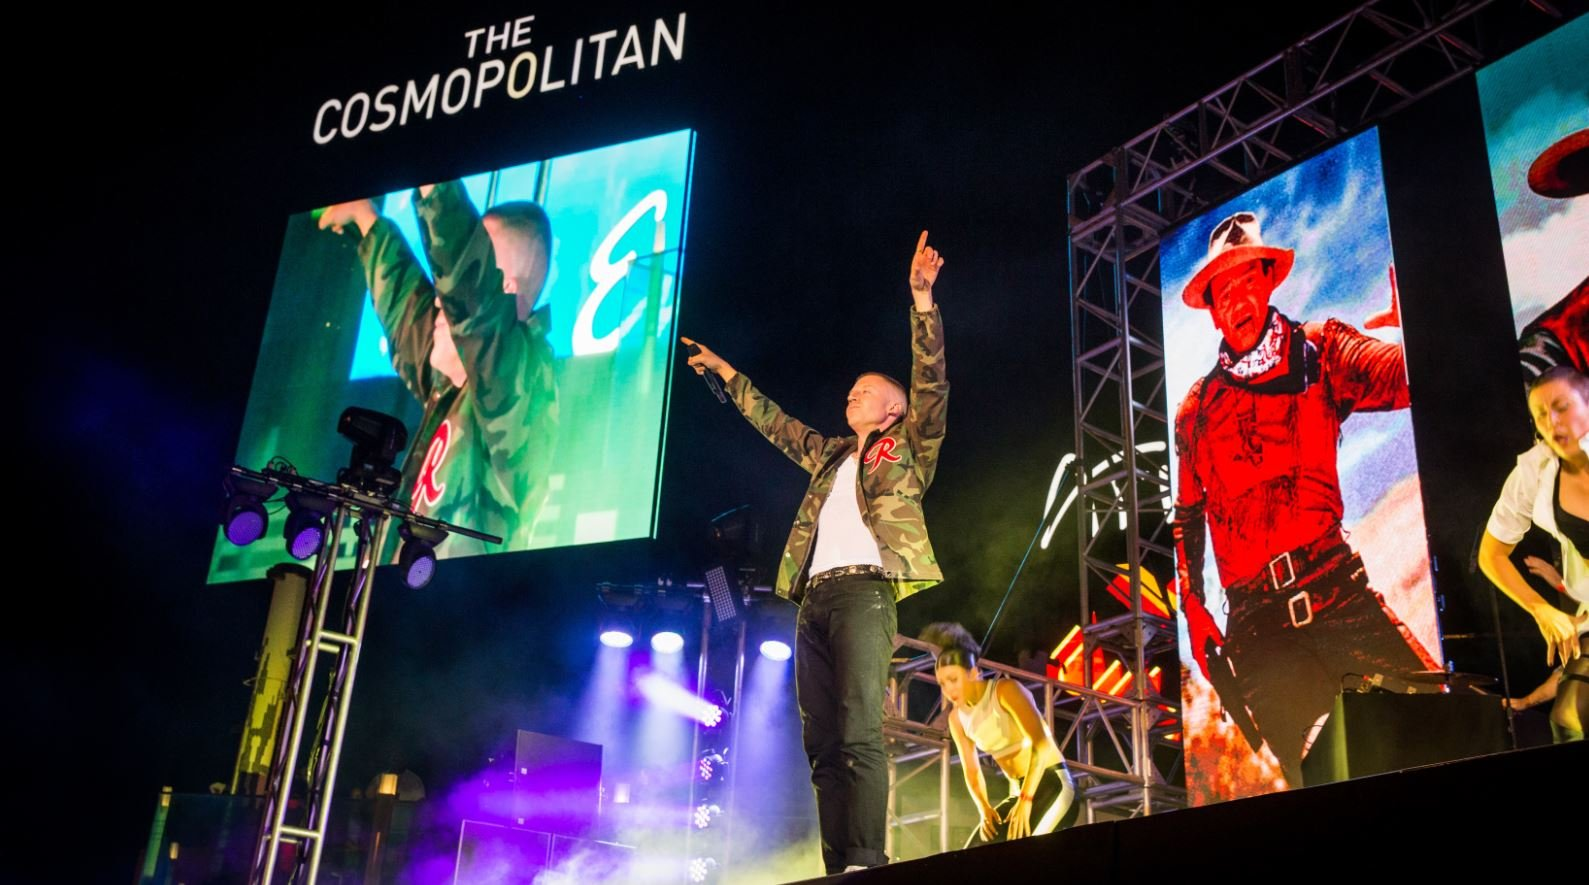 Macklemore & Ryan Lewis perform at The Boulevard Pool at The Cosmopolitan on 09/04/2016.